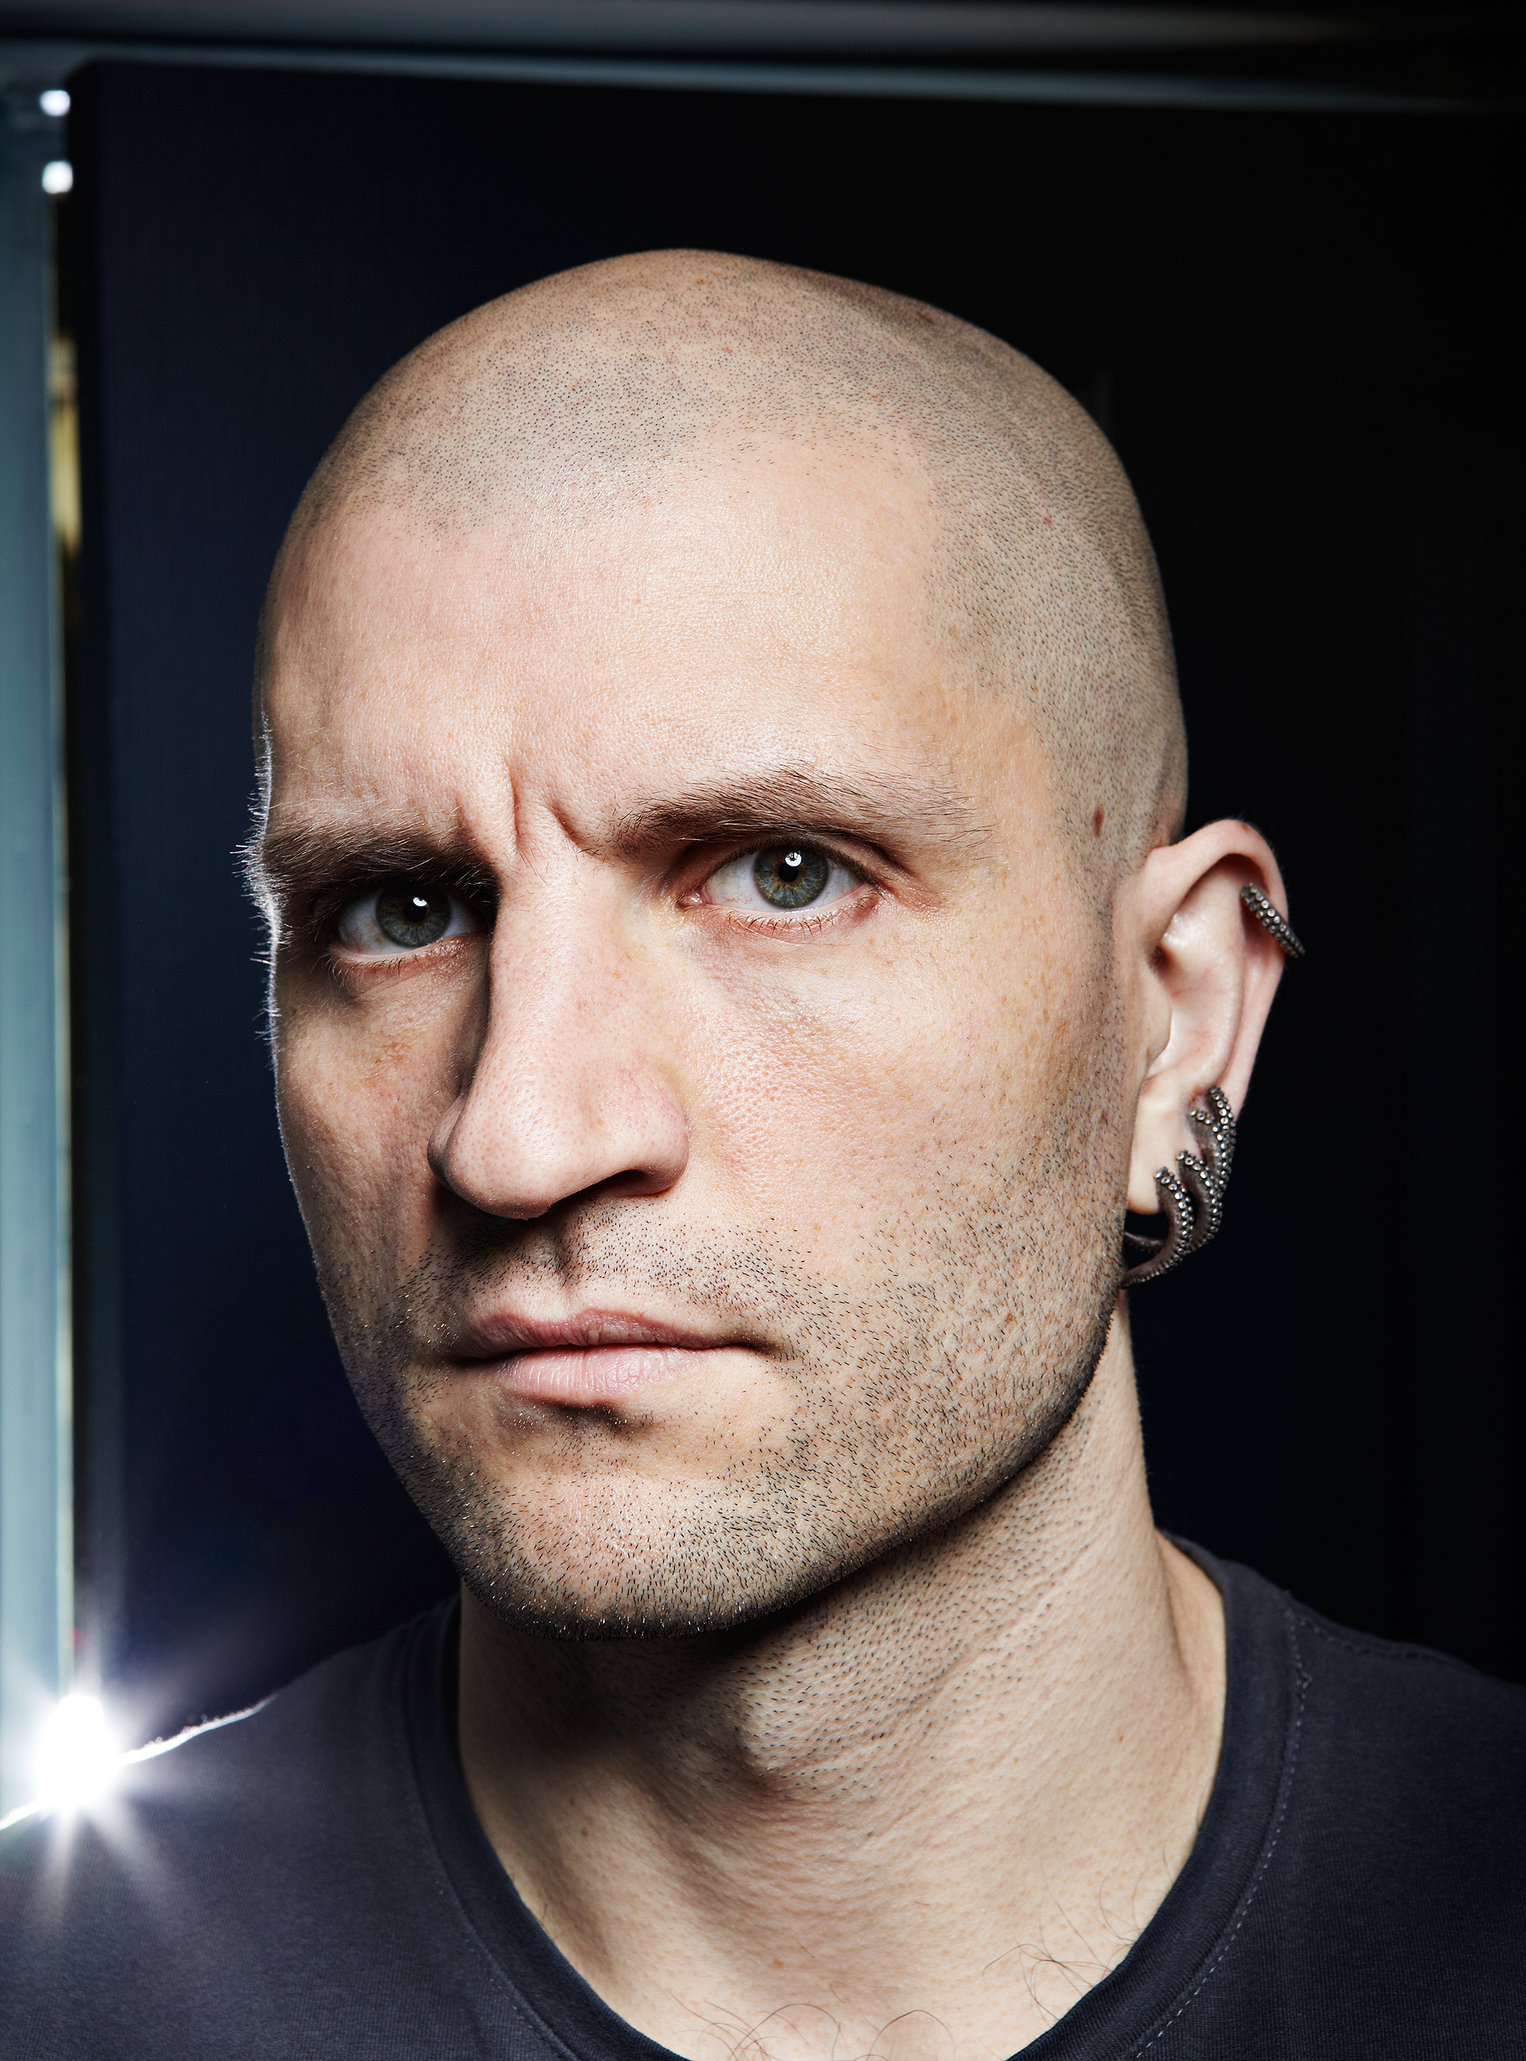 China Mieville, academic and author